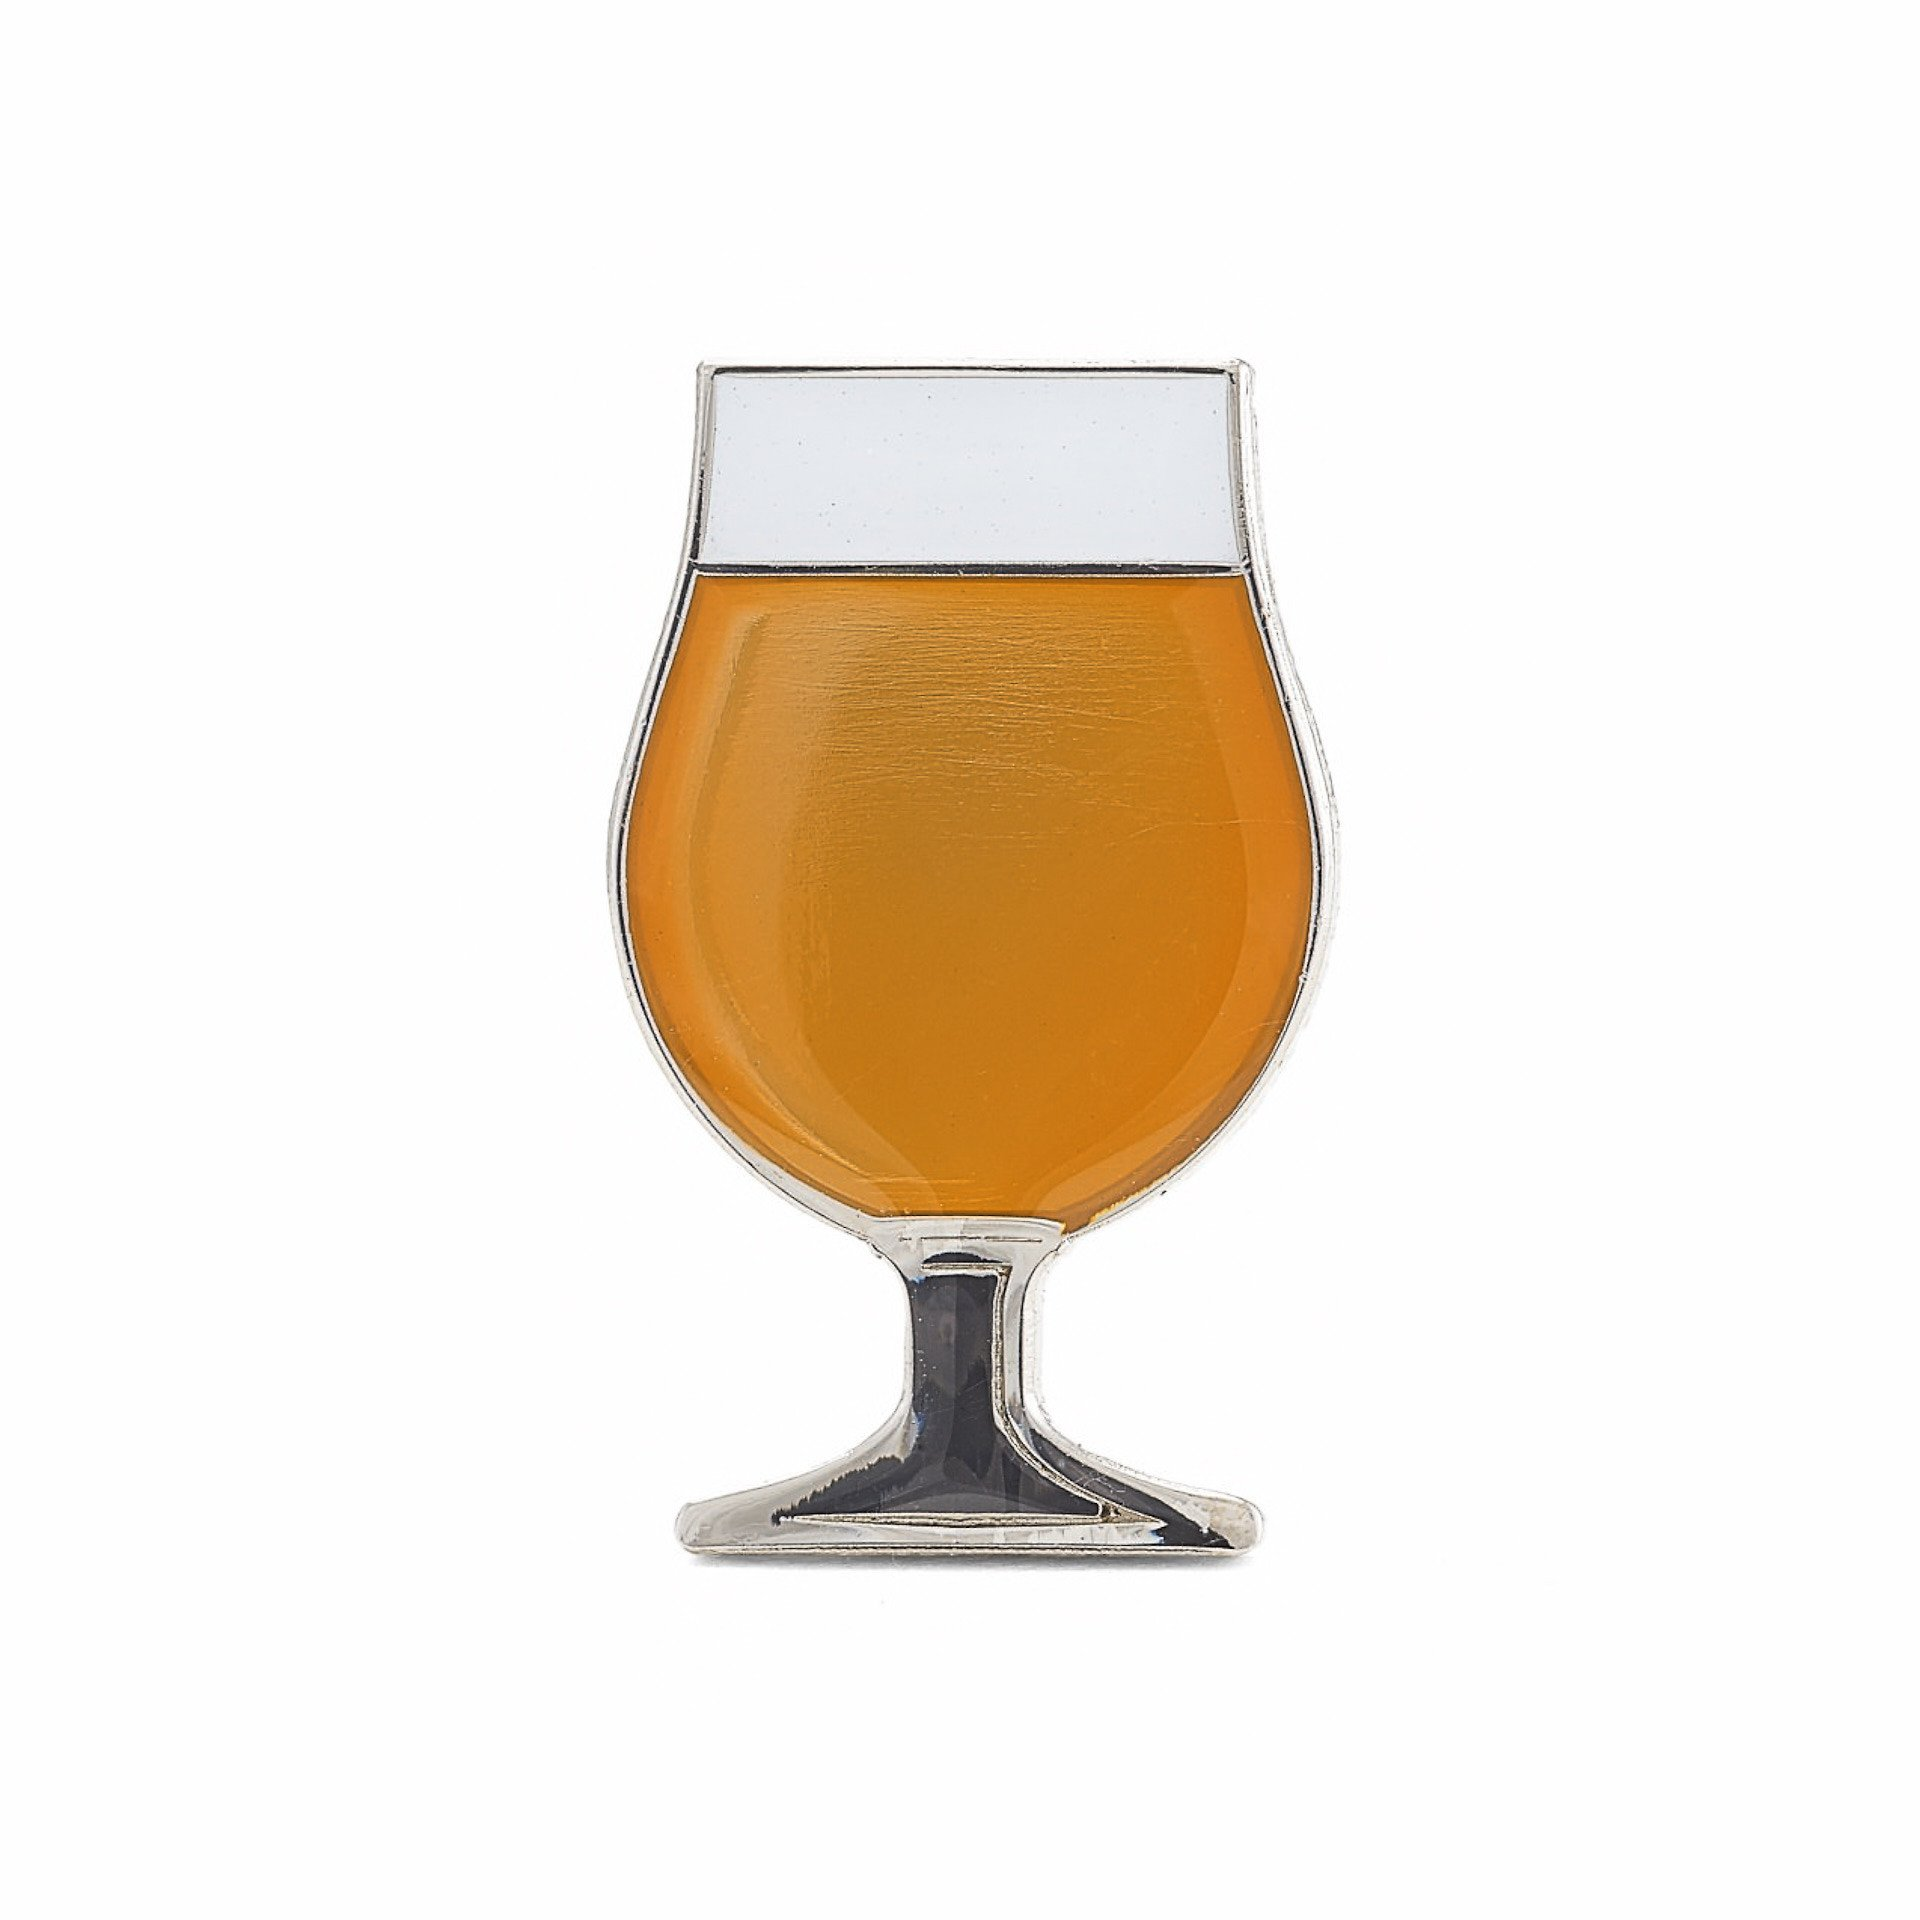 Beer tulip clipart clipart free download Beer Glass Enamel Lapel Pin - Tulip - Gold clipart free download